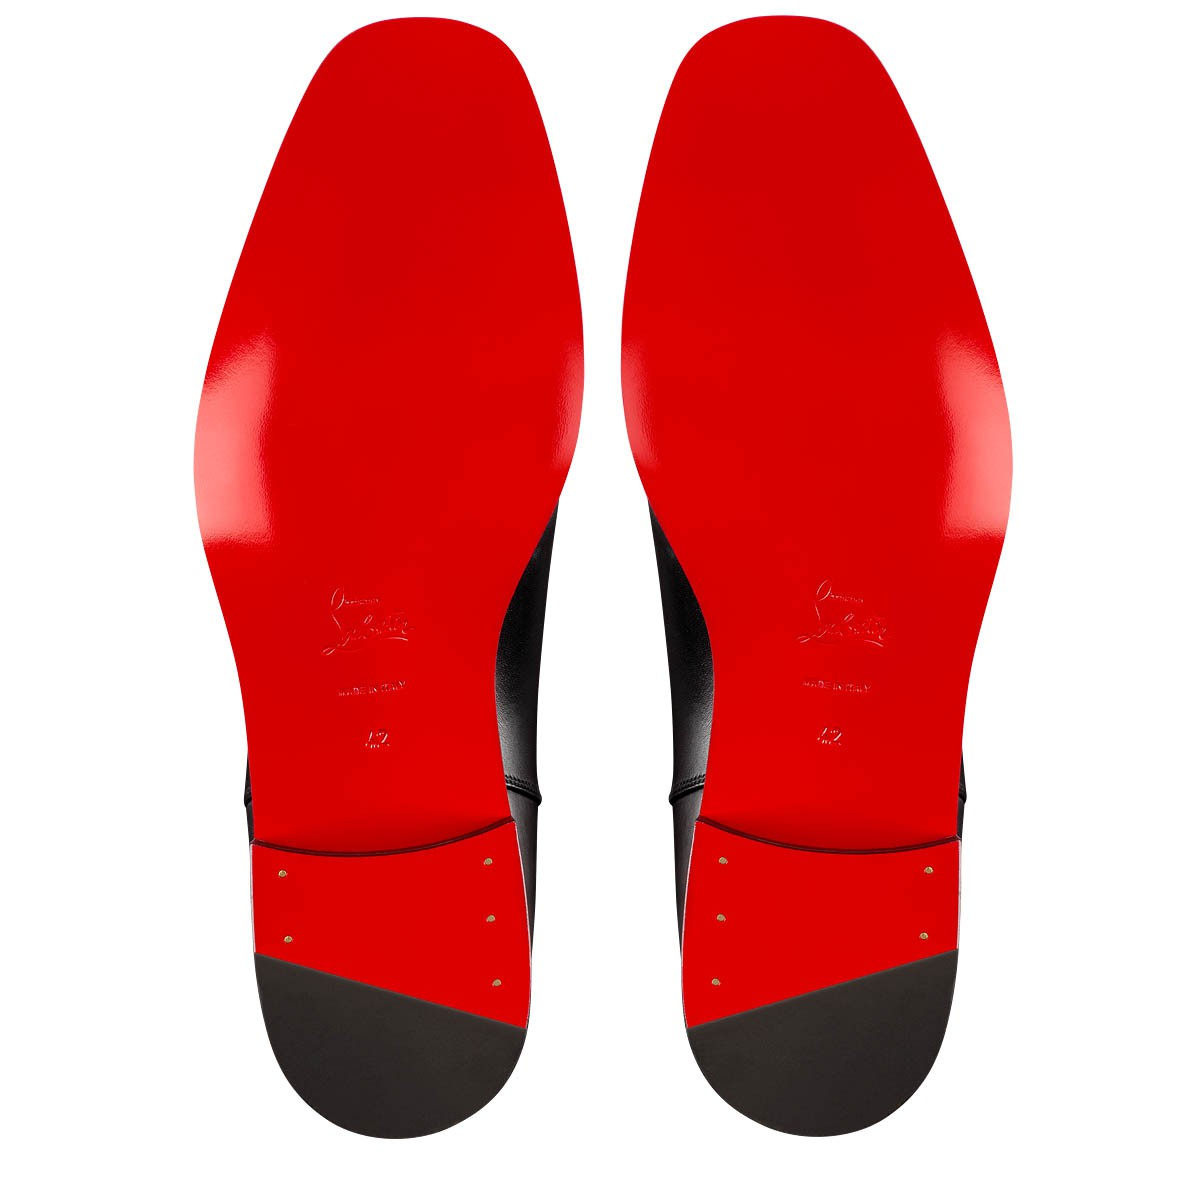 Shoes - Kicko Flat - Christian Louboutin